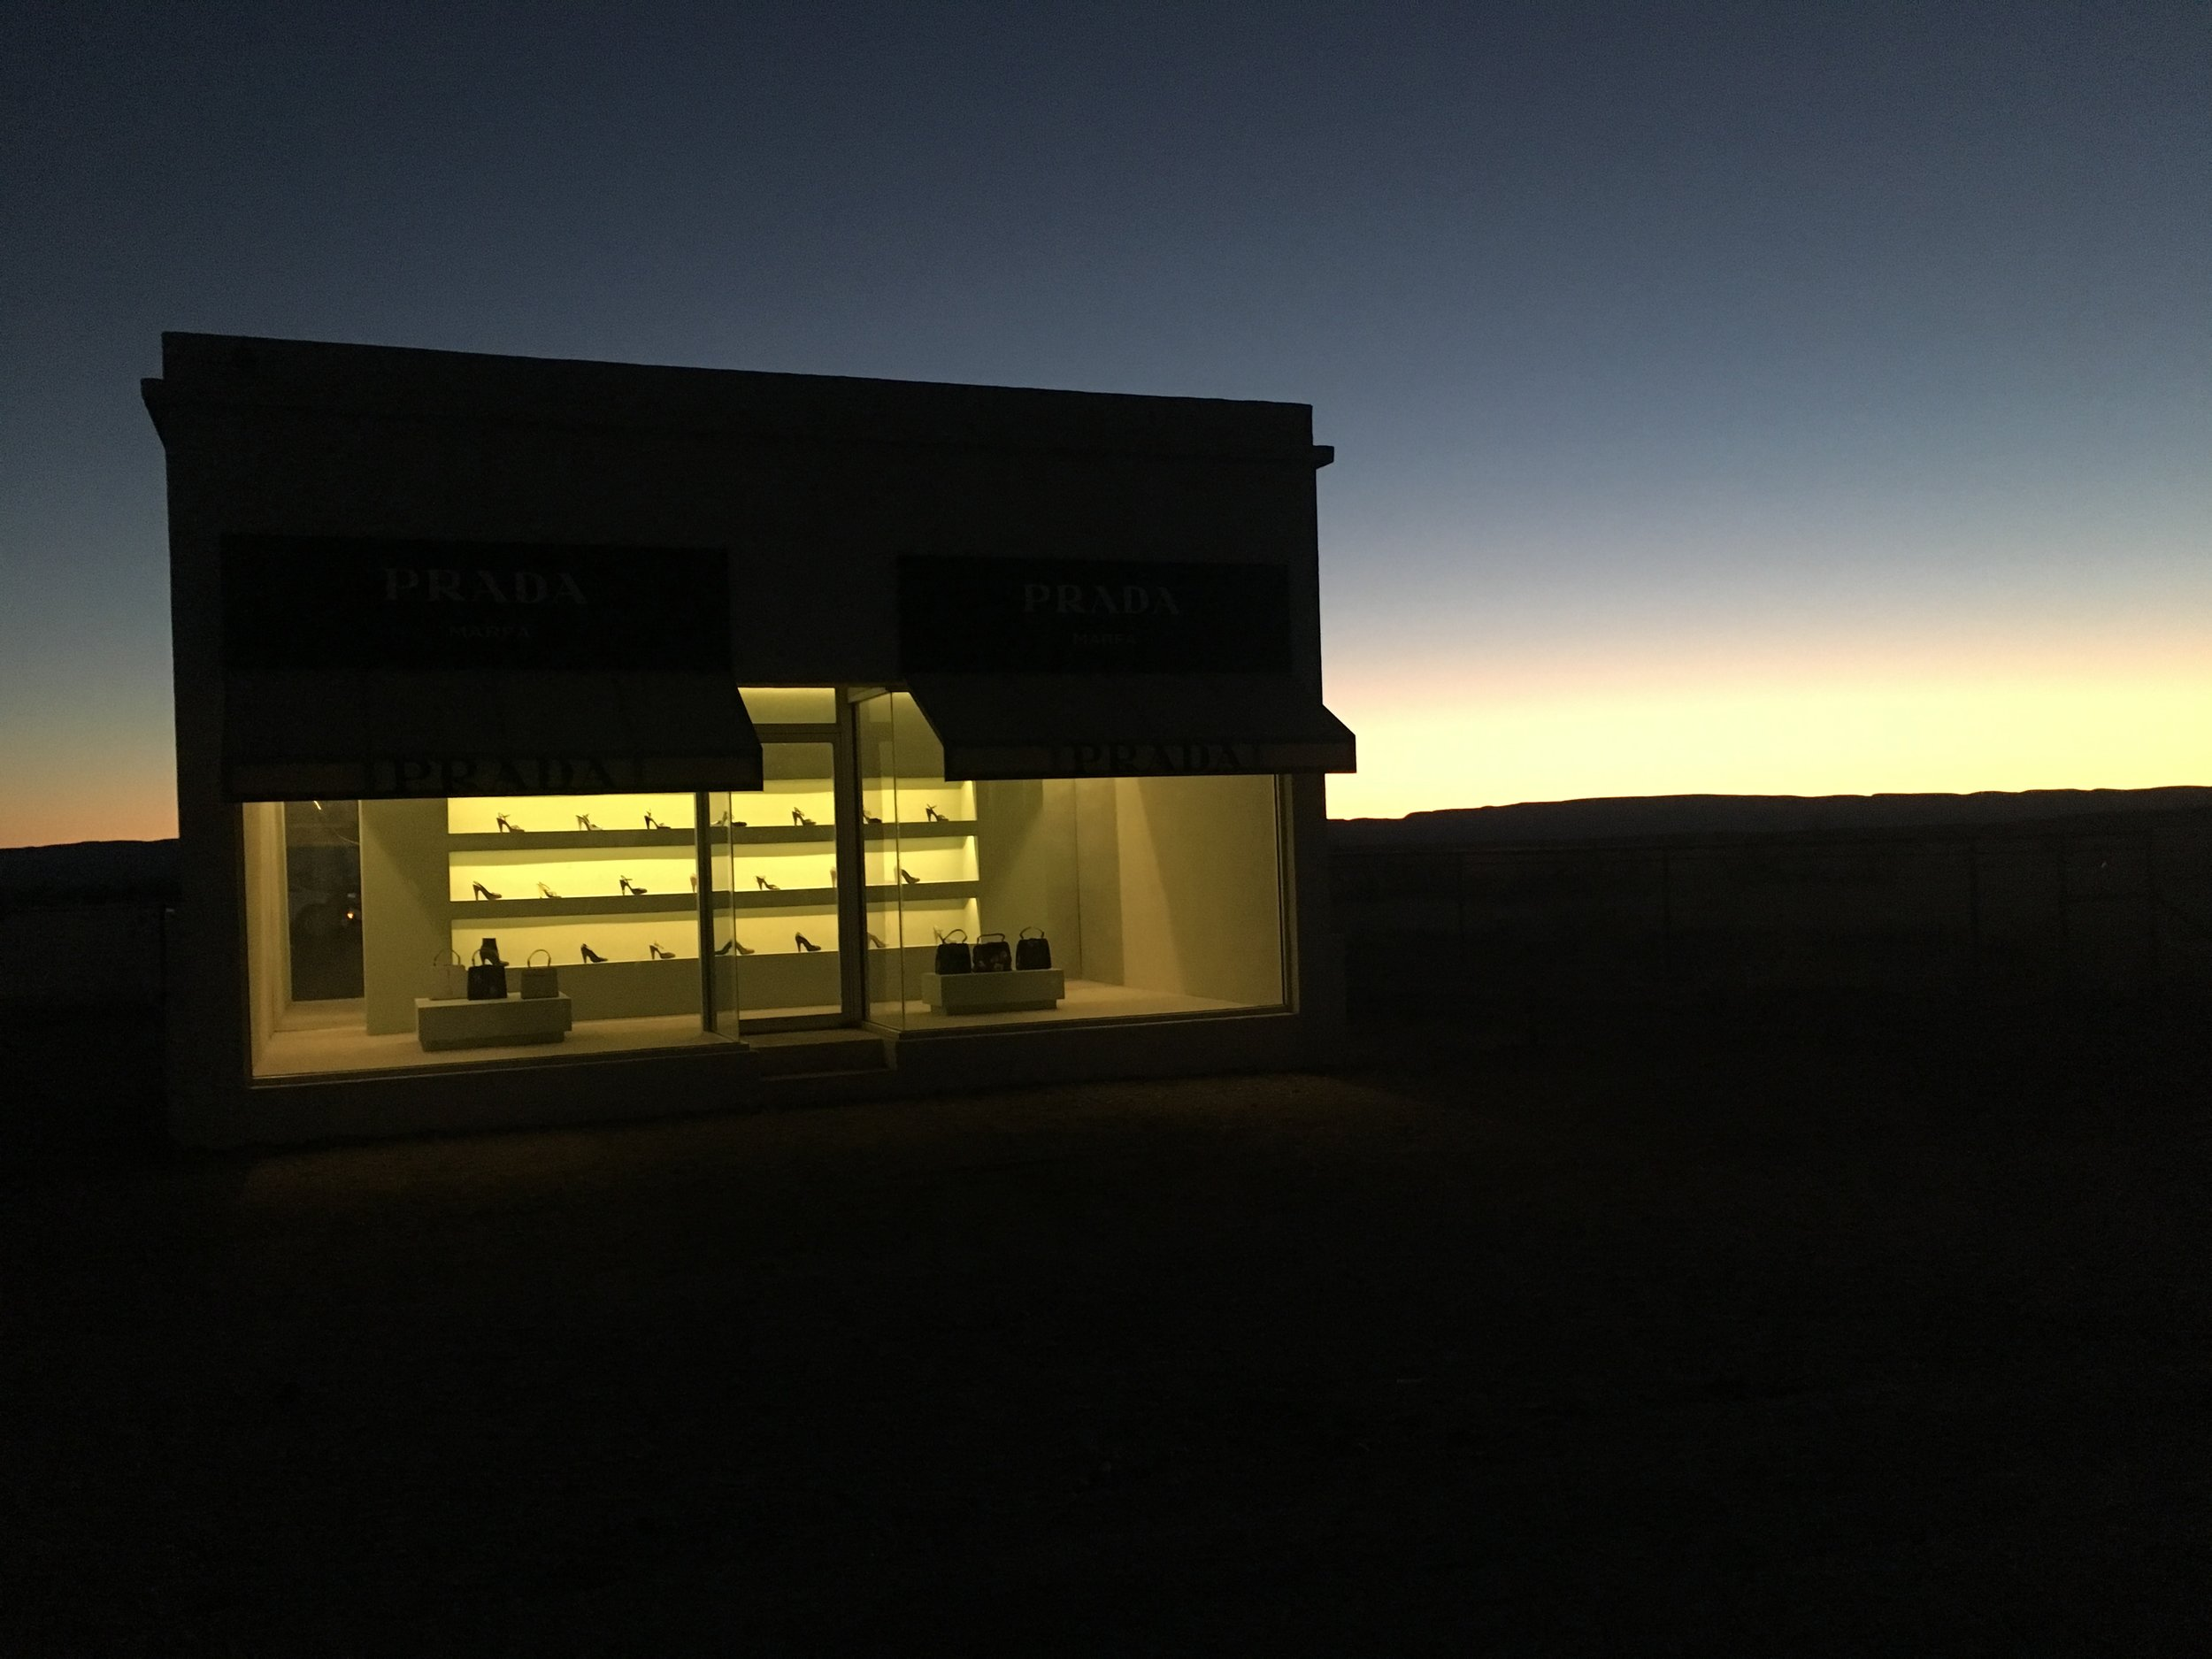 PRADA store by Elmgreen and Dragset in Valentine, Texas